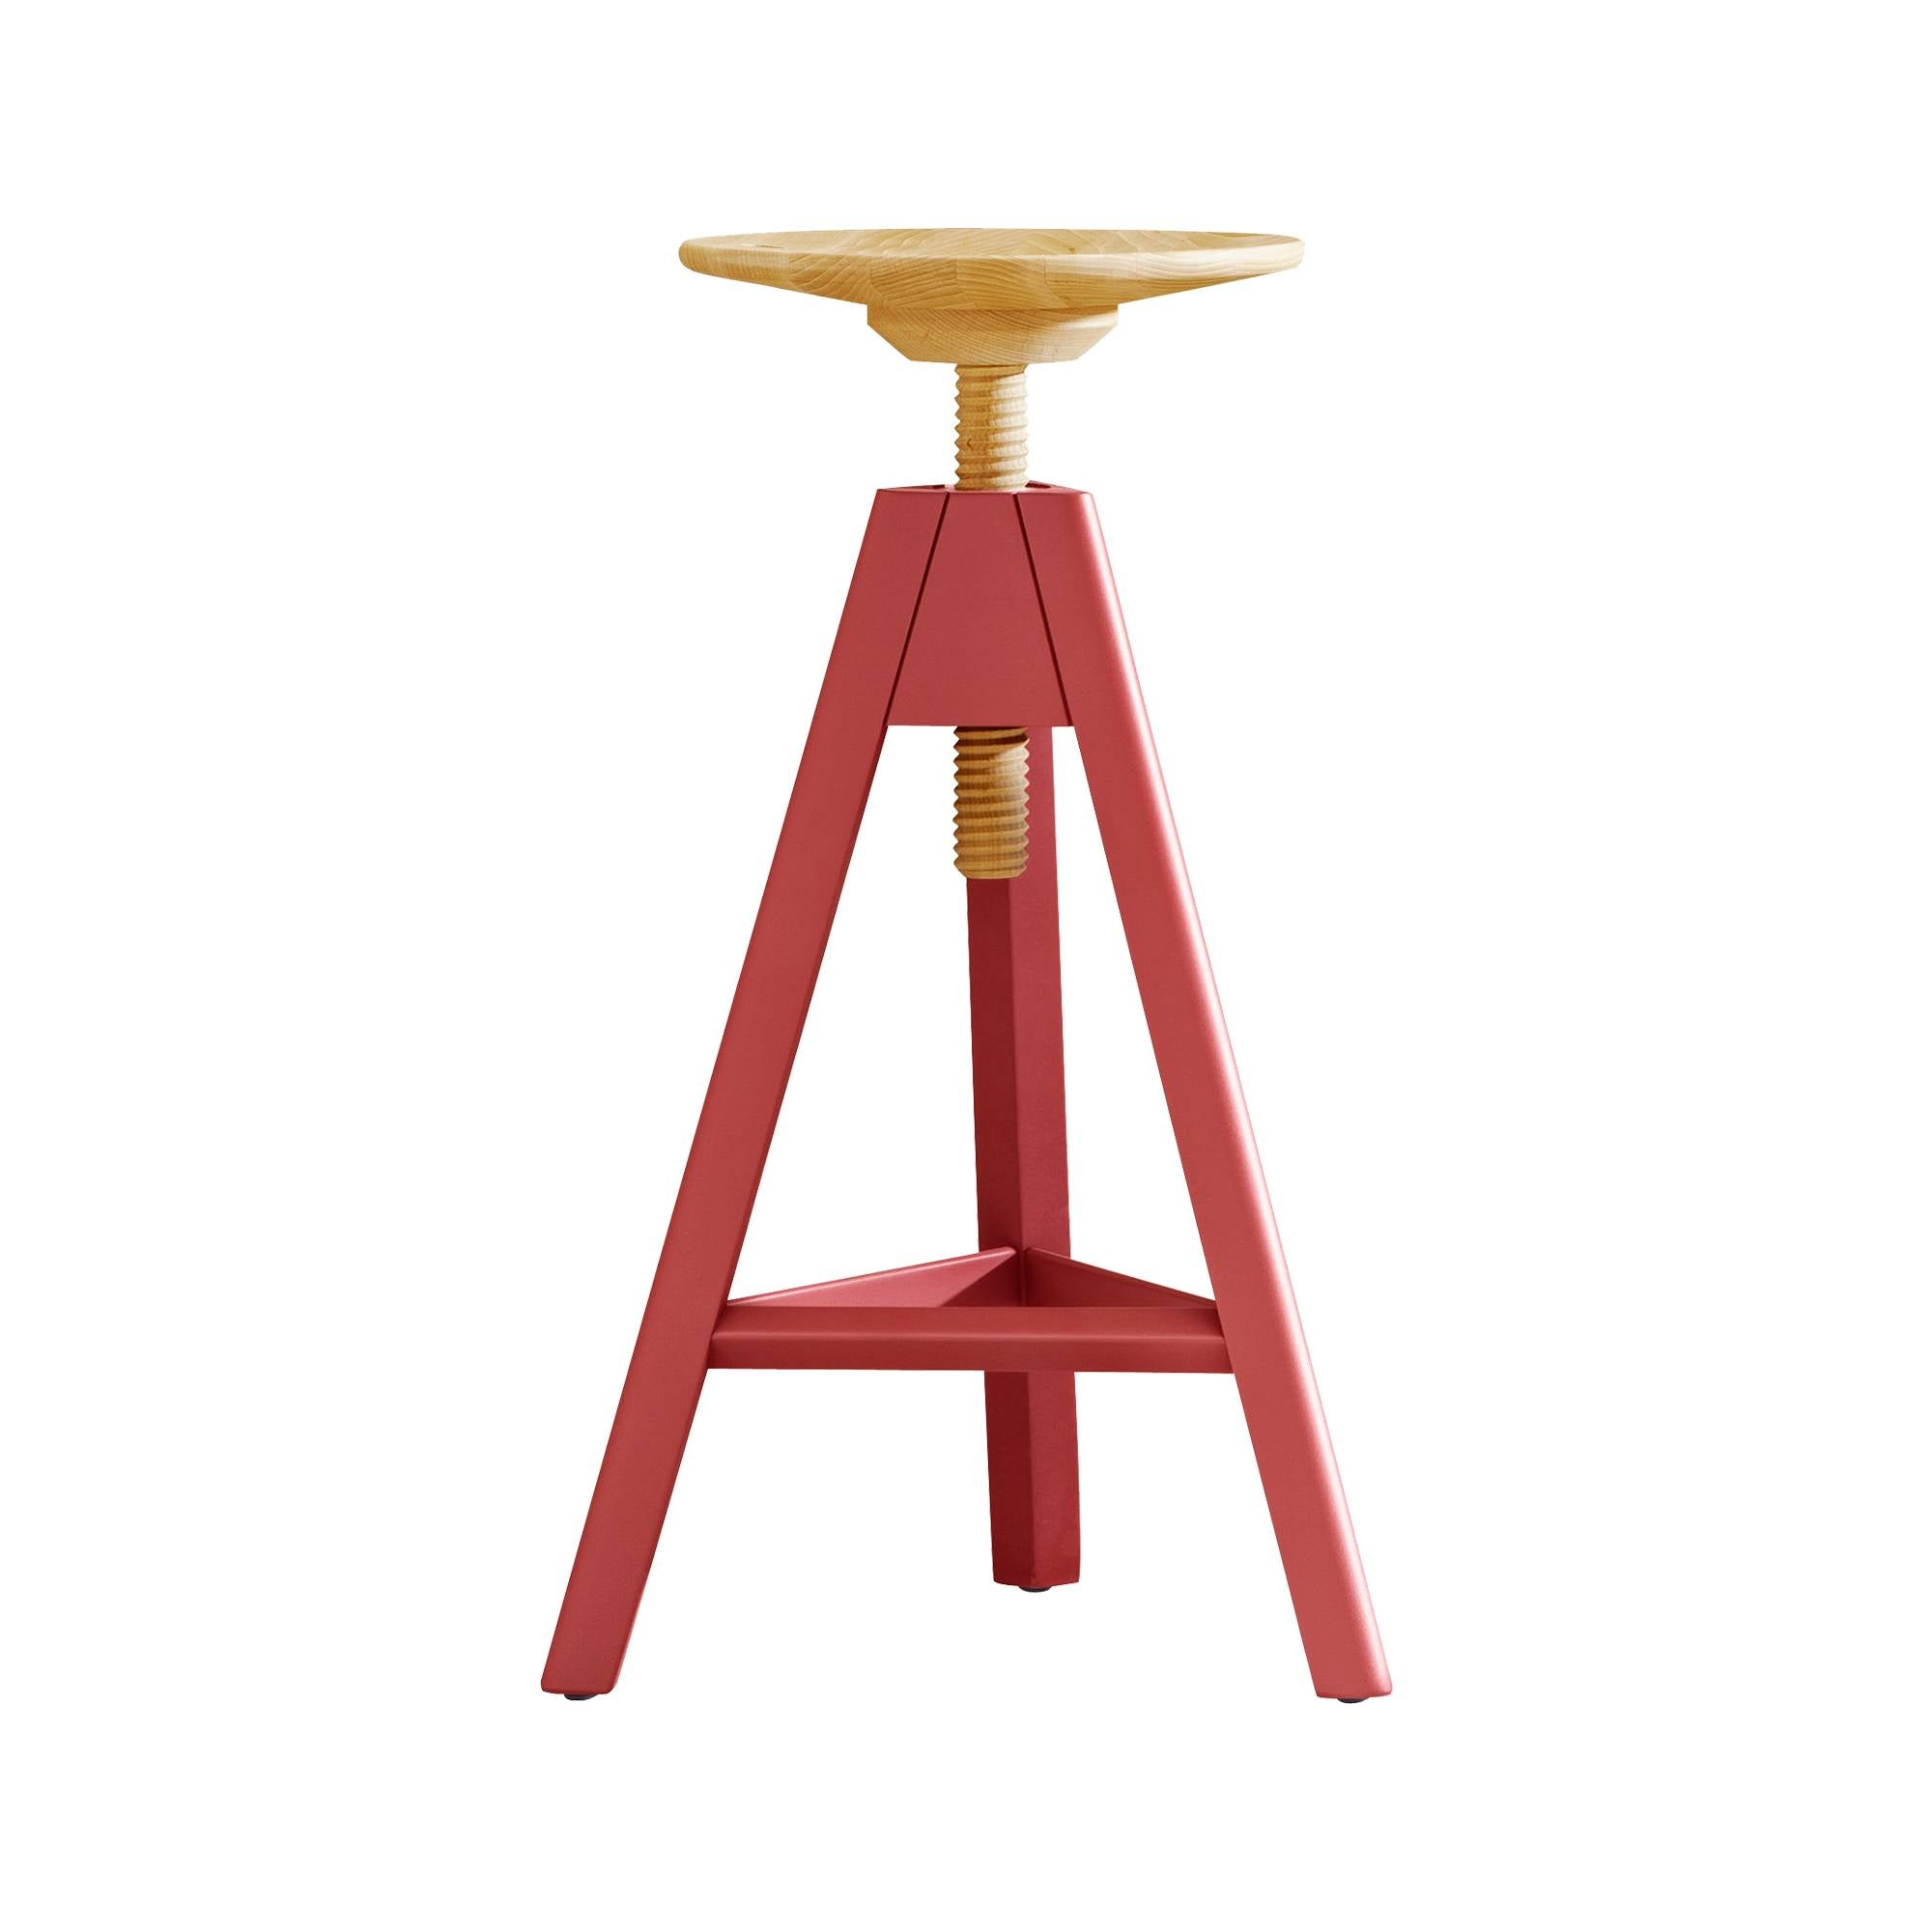 Vitos Stool: High + Marsala Red